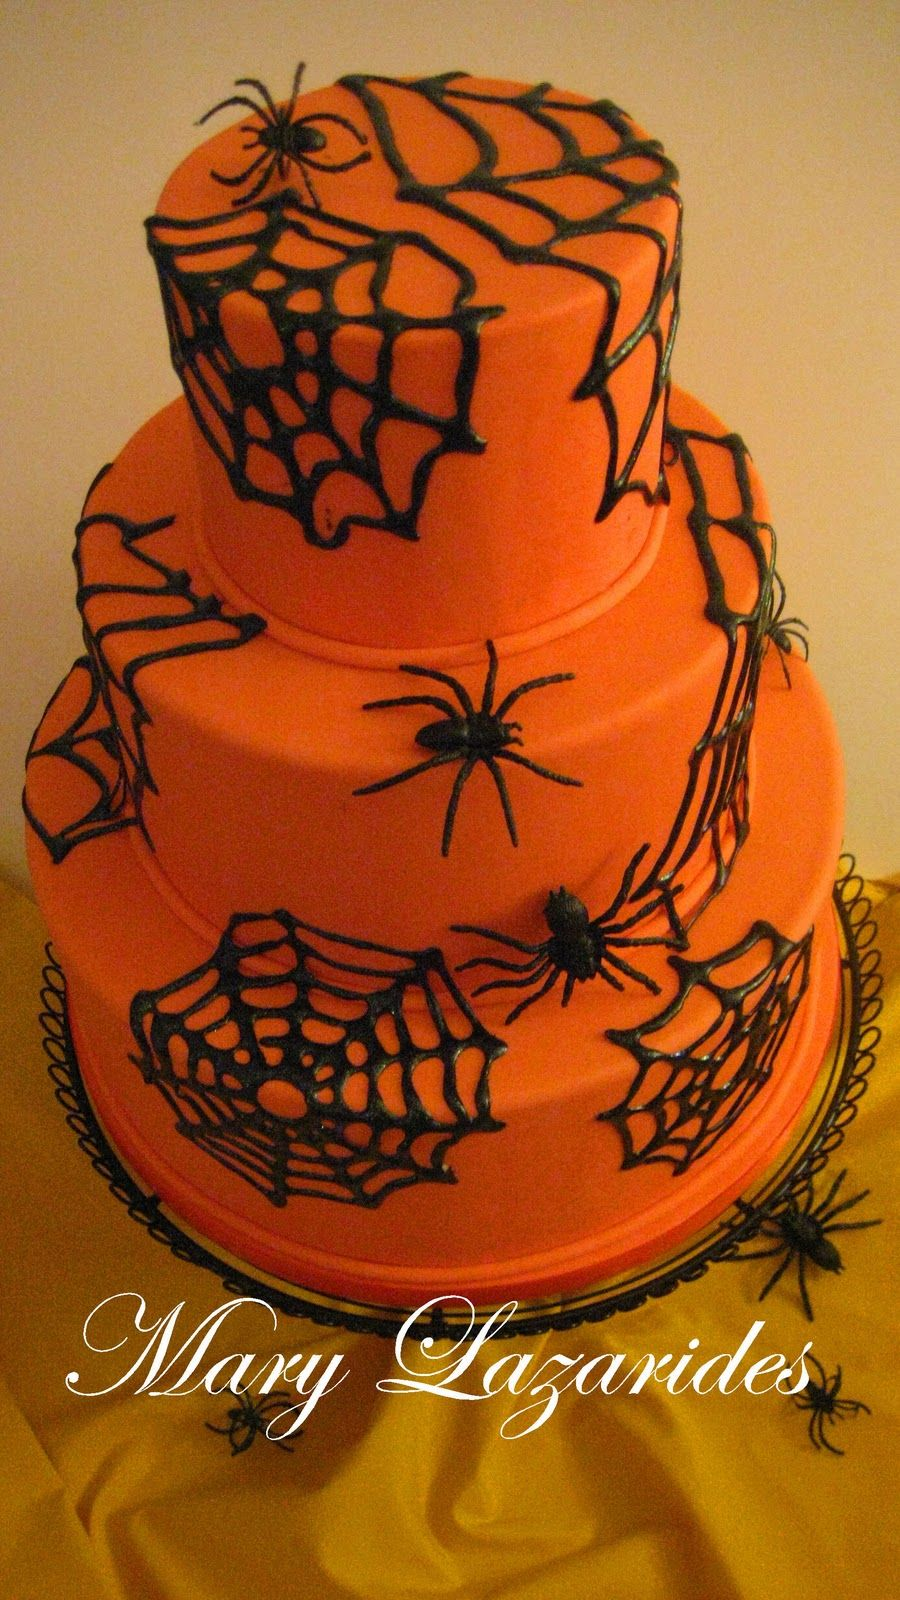 Pin by alex patterson on BOO Night !!!!!1 Pinterest Halloween - Halloween Cake Decorating Ideas